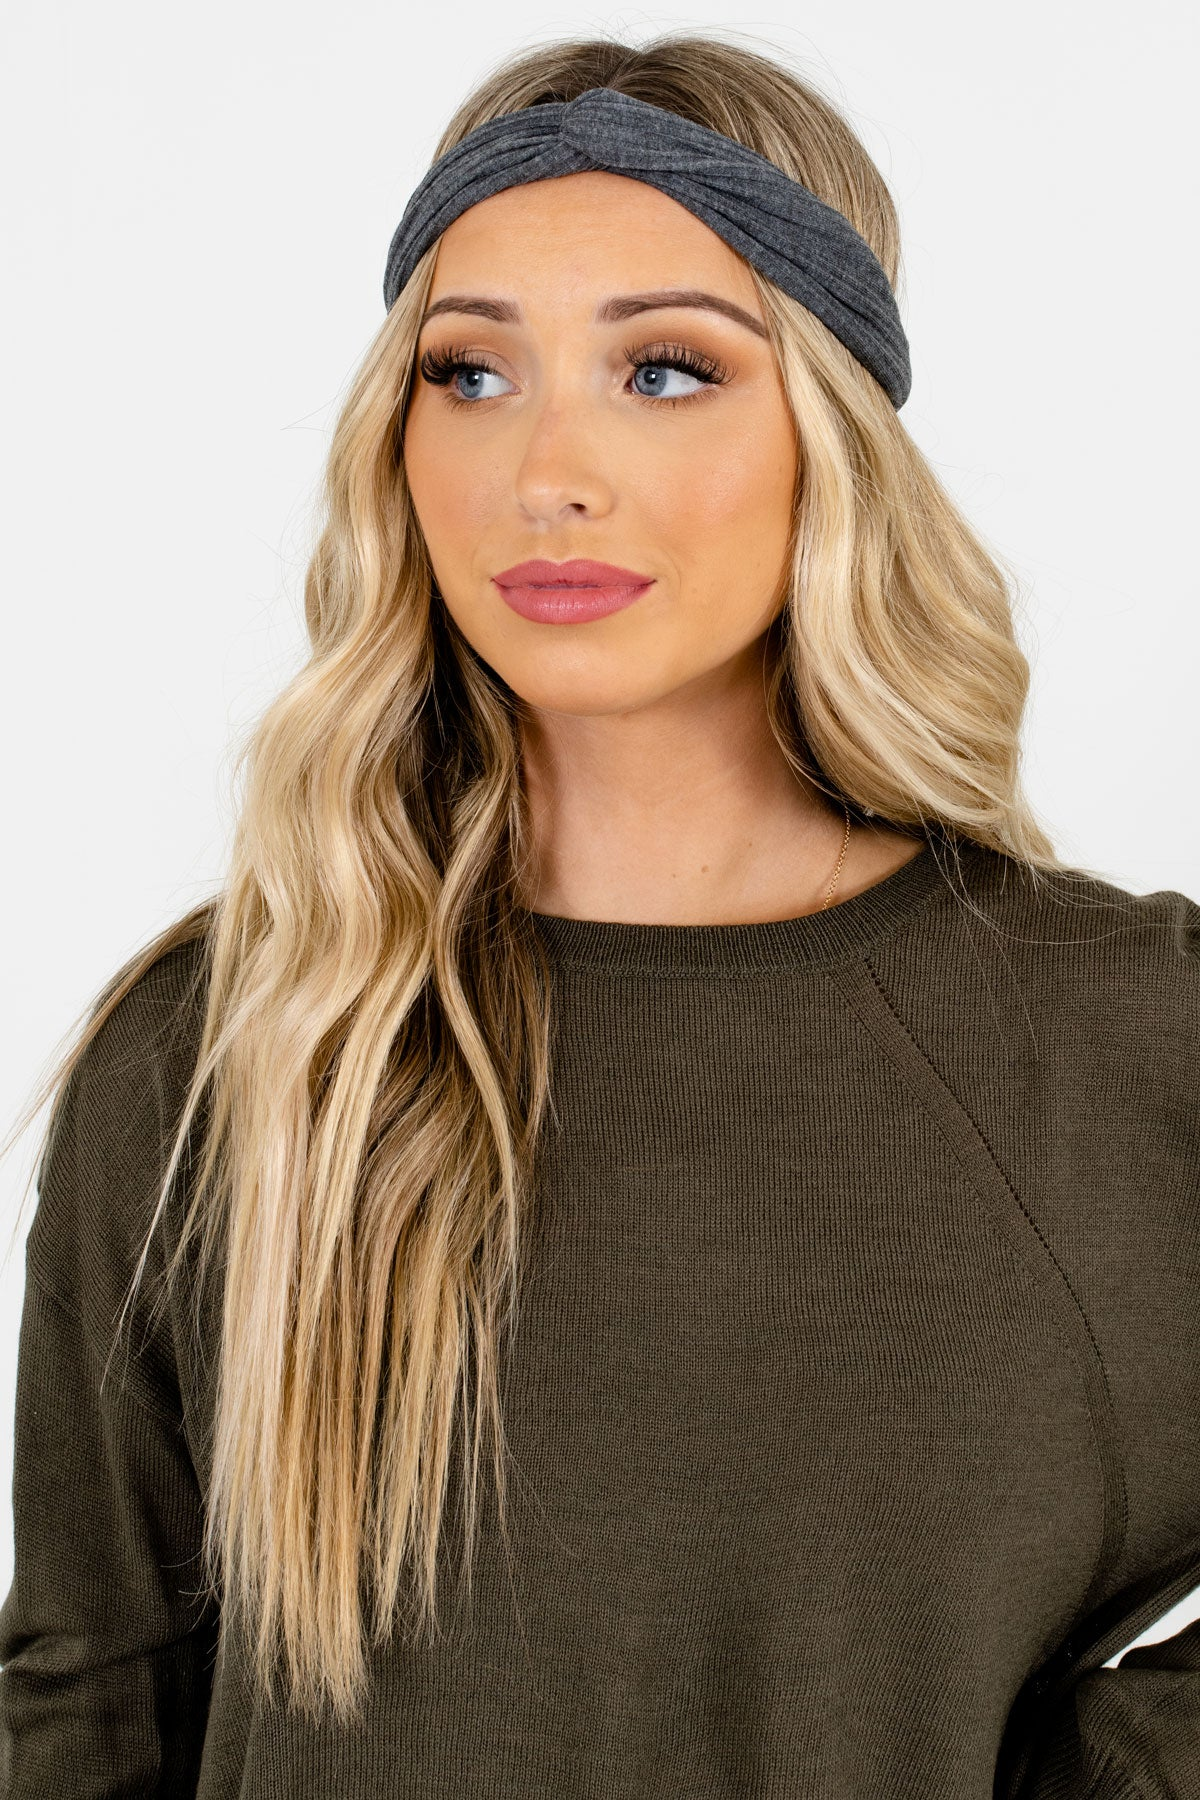 Gray Ribbed Material Boutique Headbands for Women